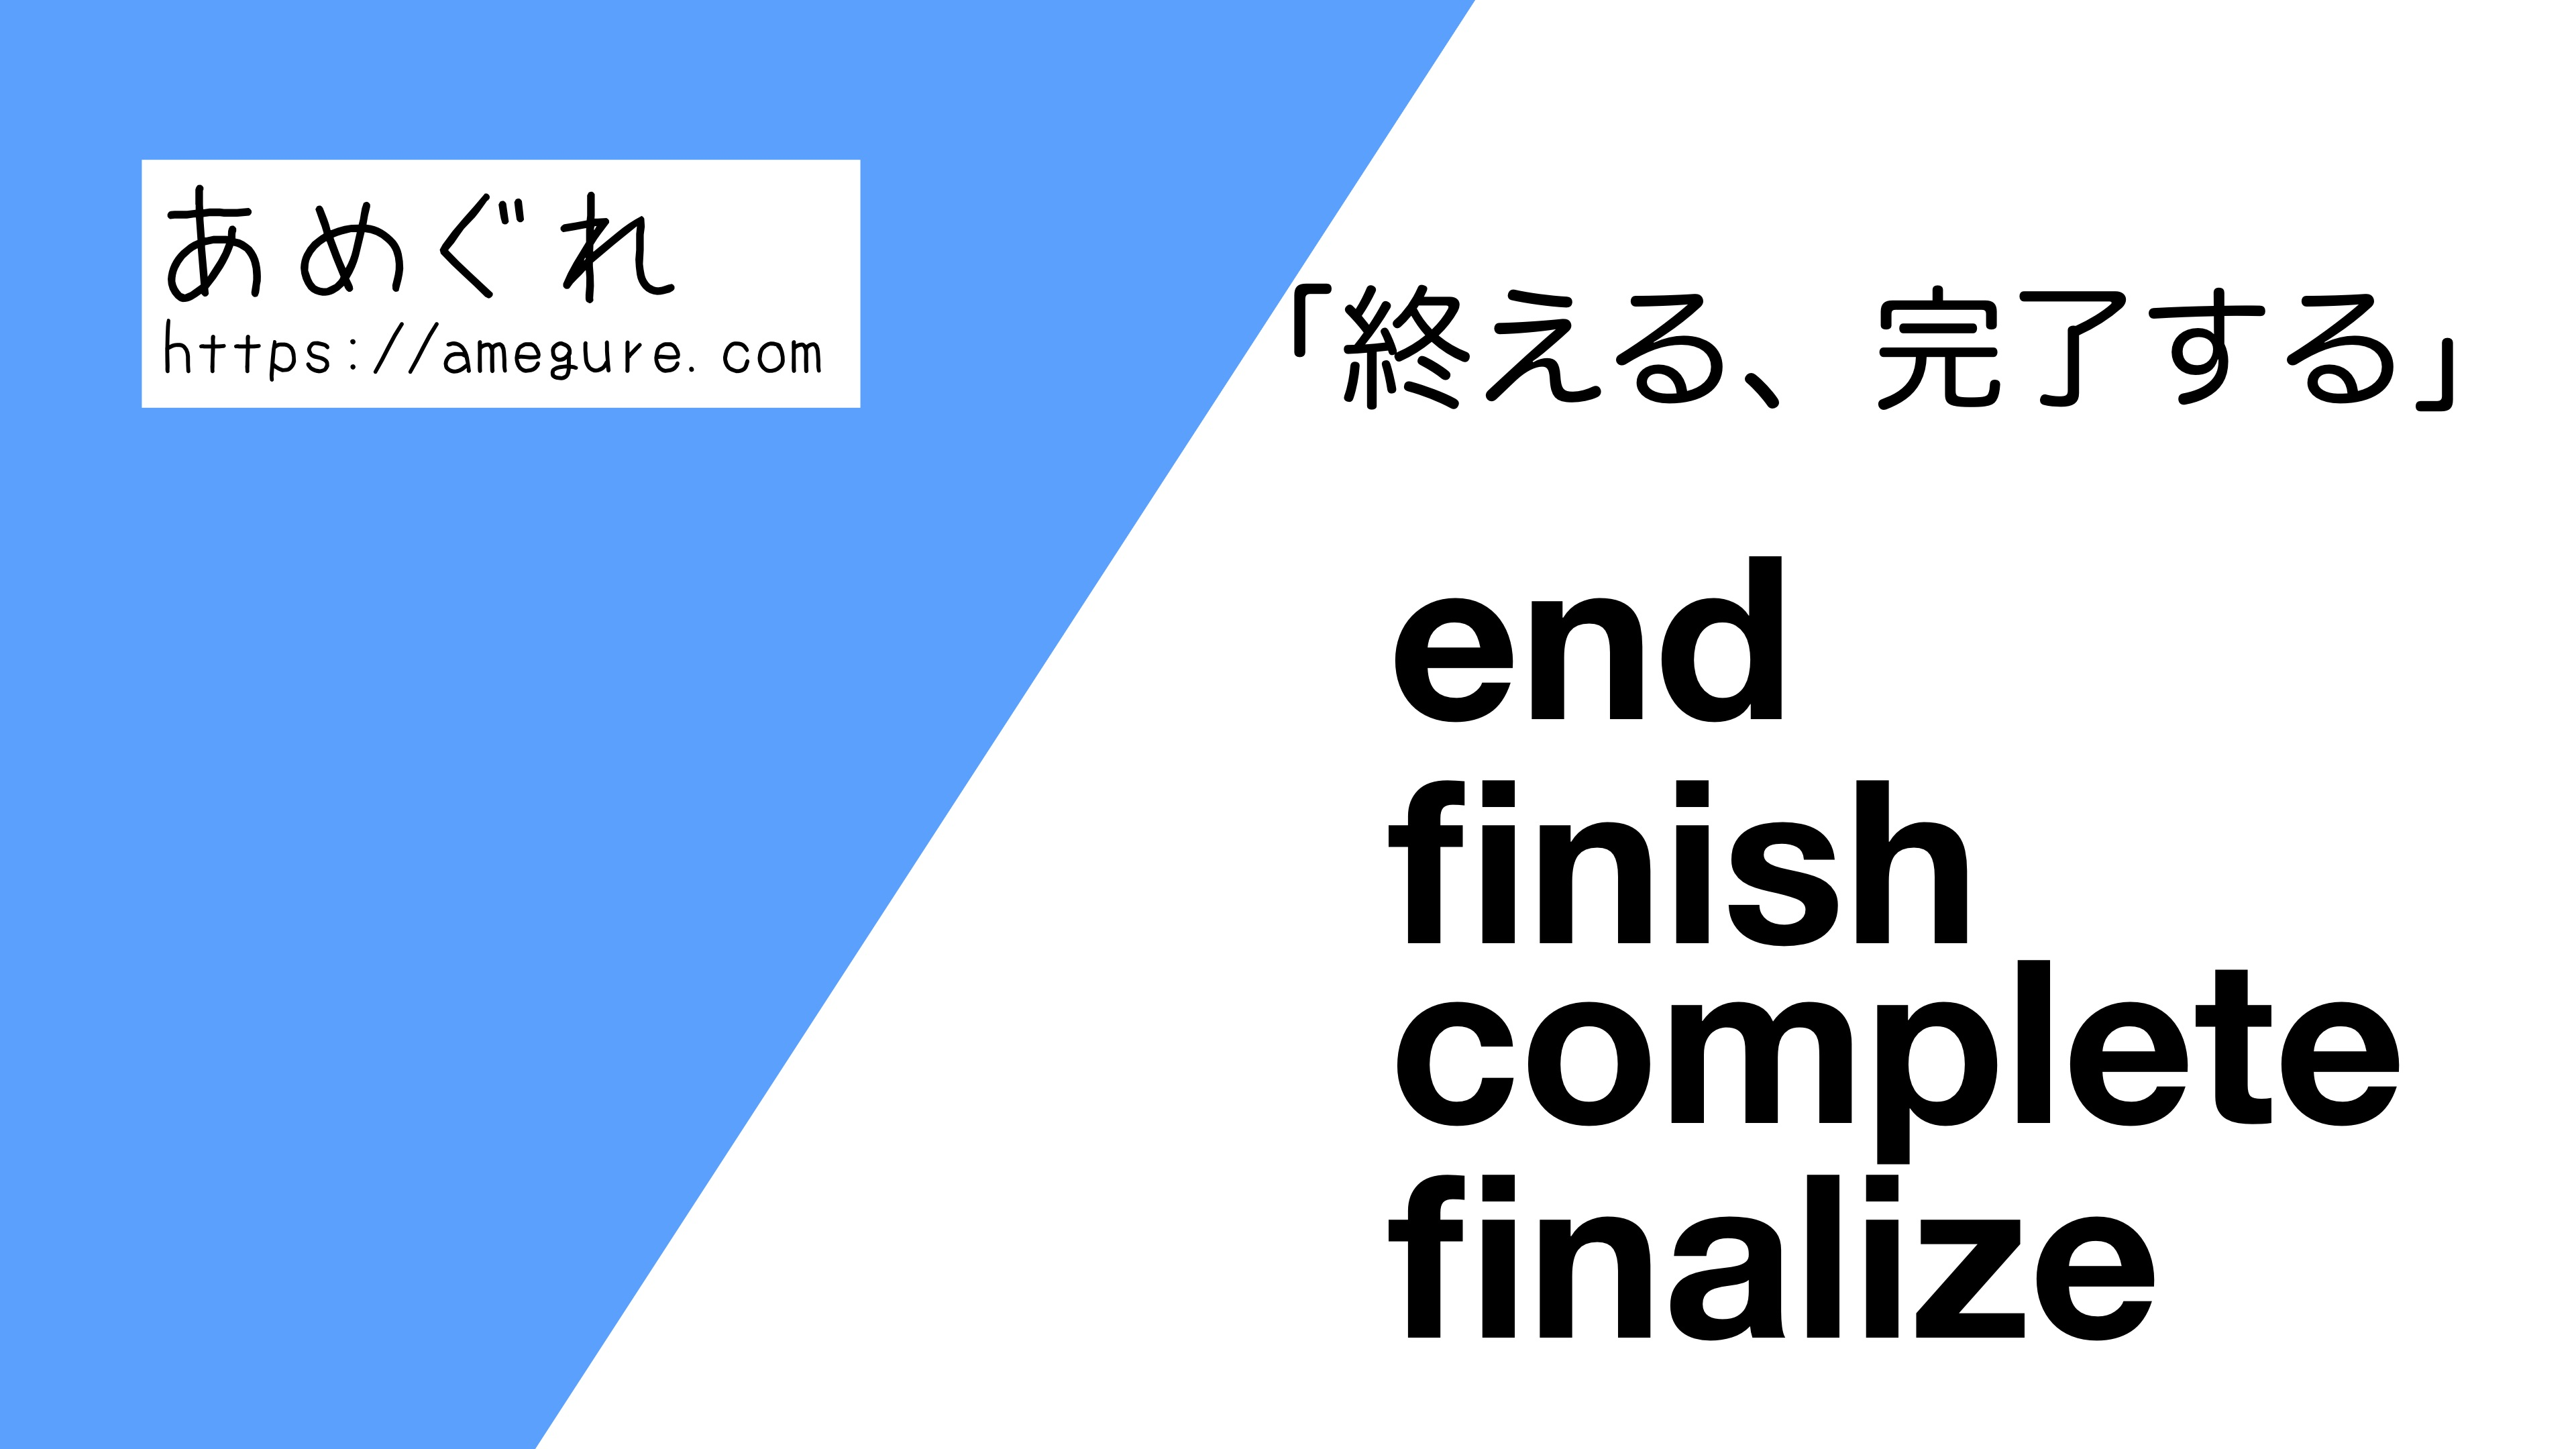 end-finish-complete-finalize違い